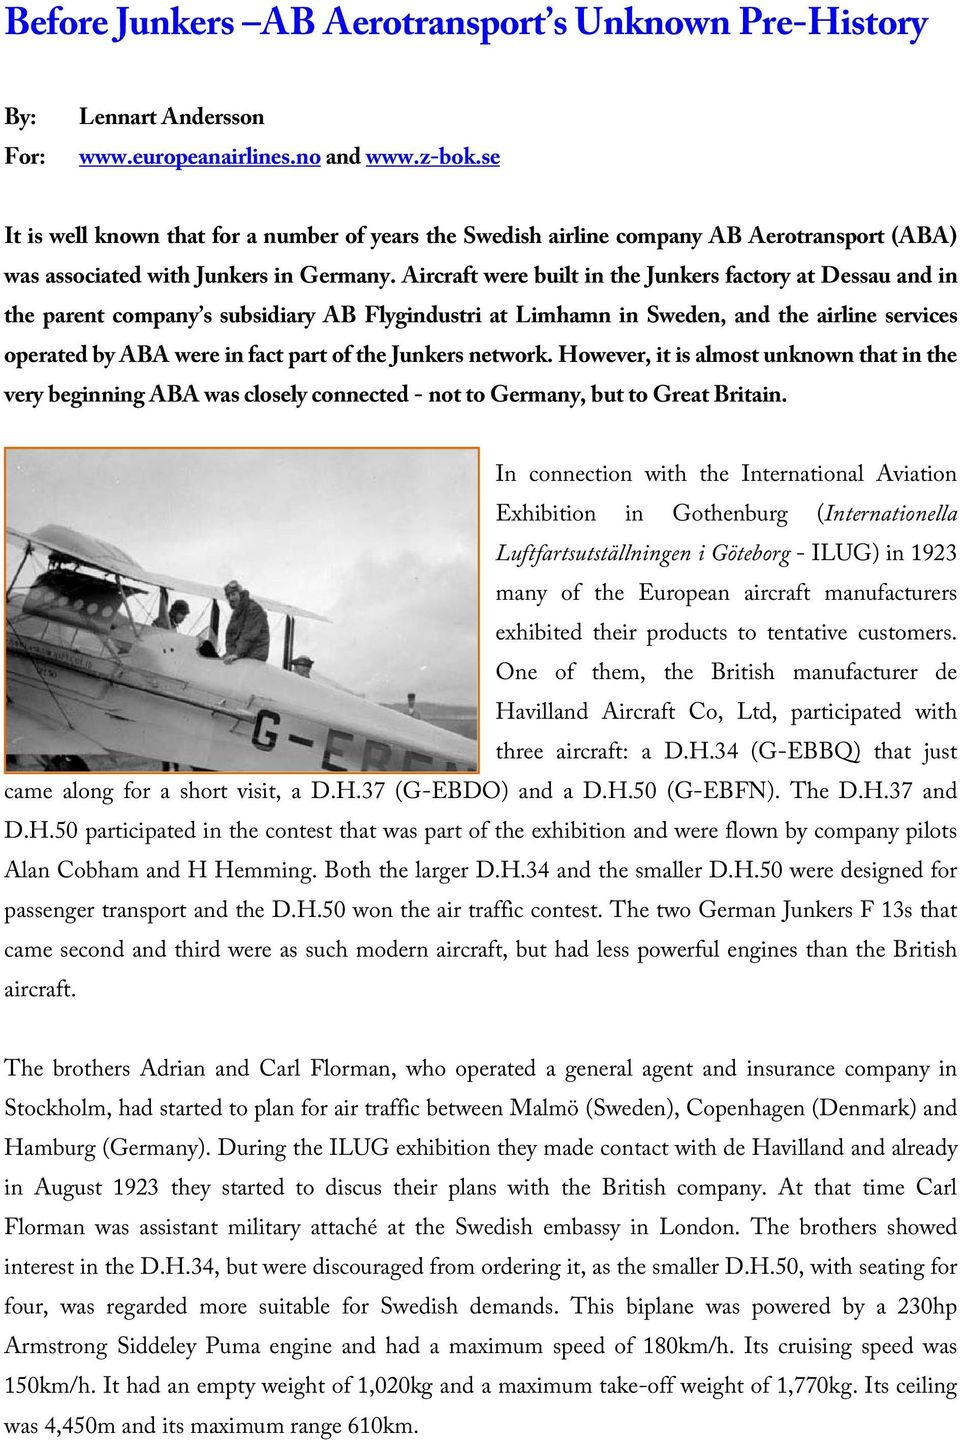 Aircraft were built in the Junkers factory at Dessau and in the parent company s subsidiary AB Flygindustri at Limhamn in Sweden, and the airline services operated by ABA were in fact part of the